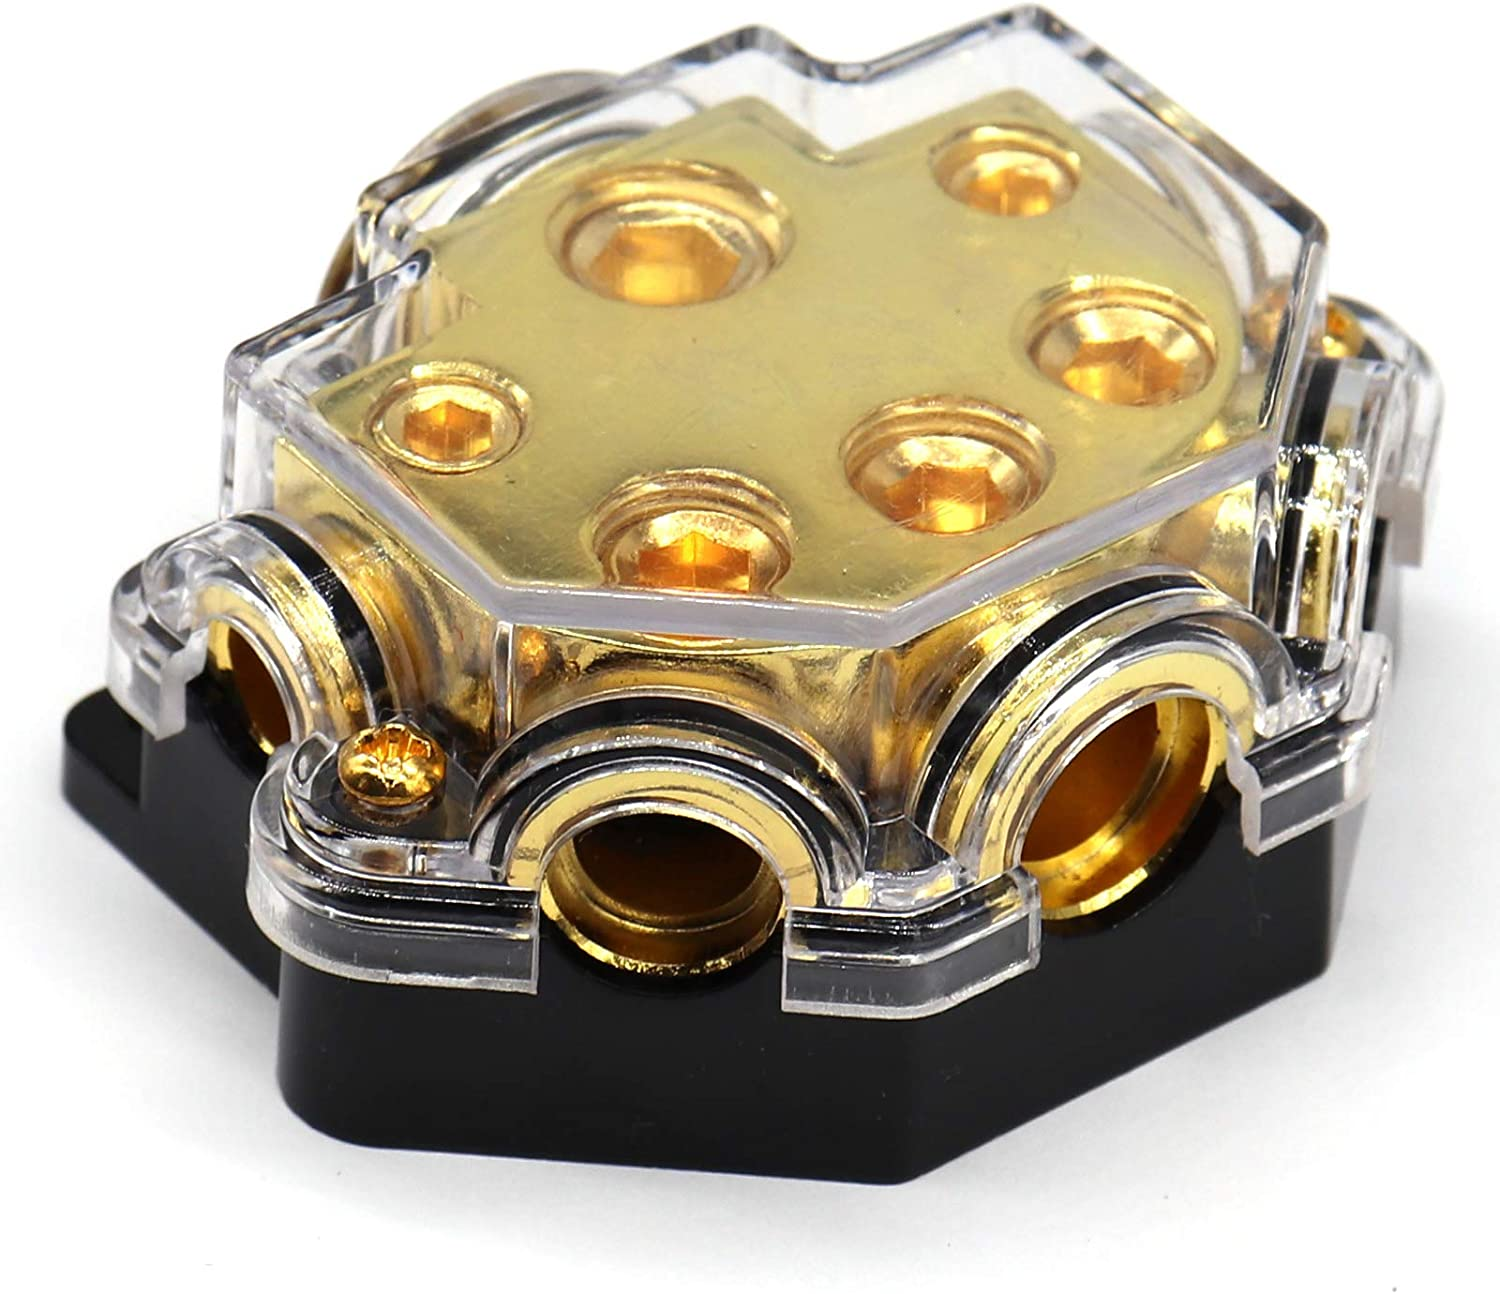 Audio Amplifier 1 in 5 Ways Out Car Audio Distributor Block Holder Fusebox for Car Audio Splitter Ground Distribution Connecting Block